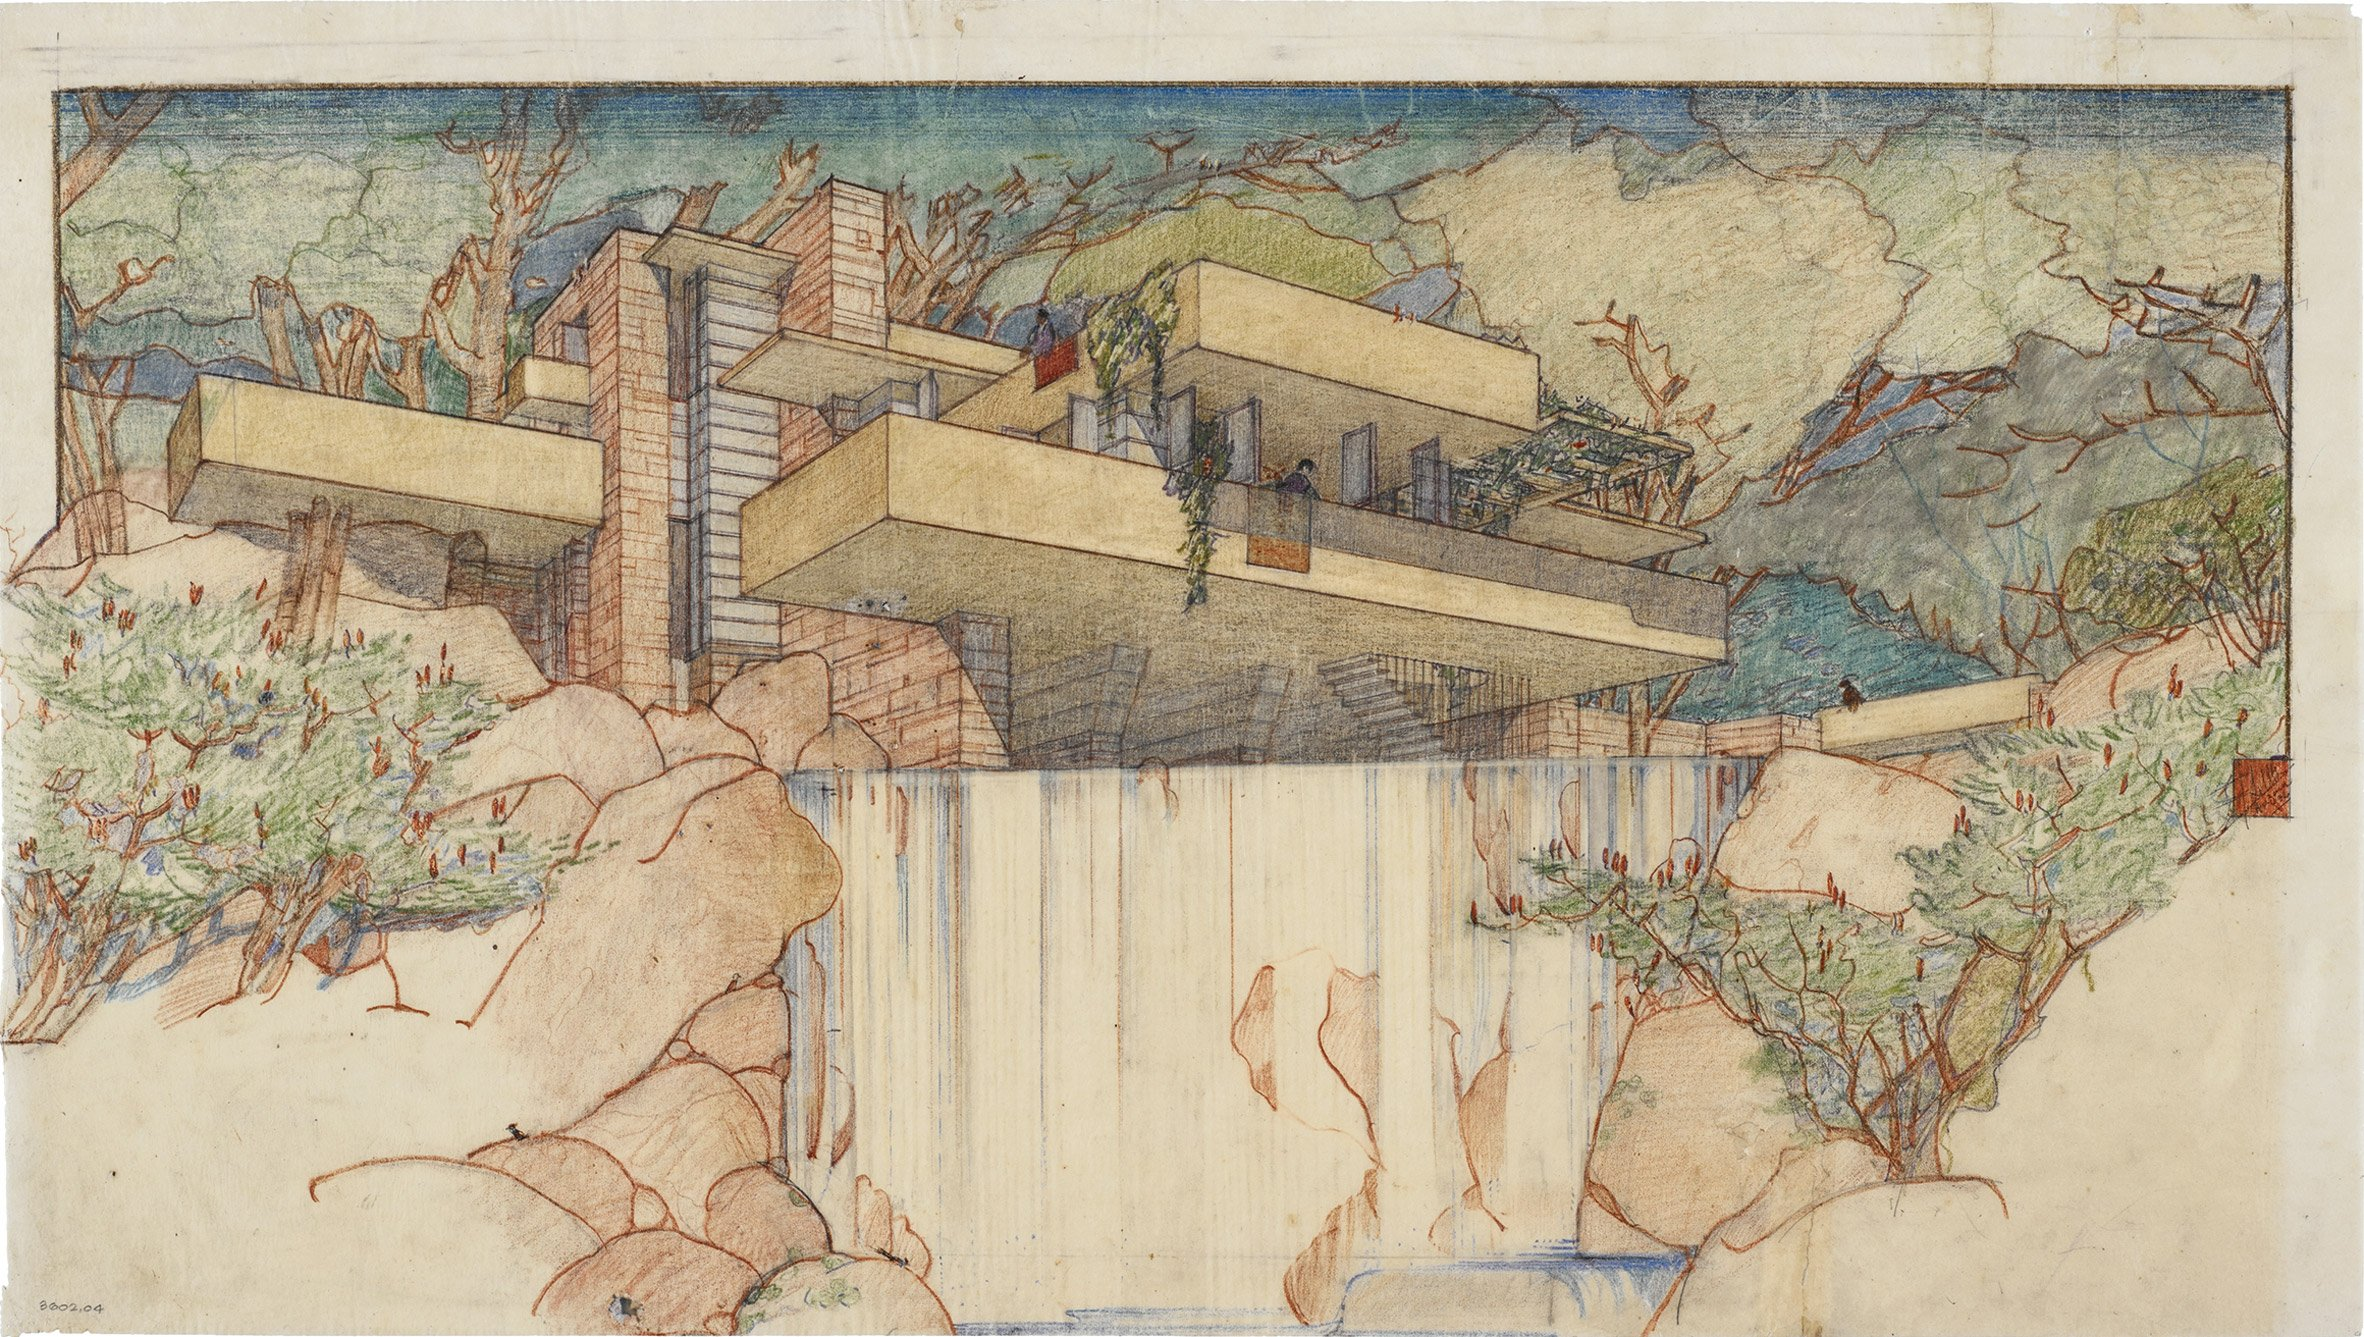 Frank Lloyd Wright at 150: Unpacking the Archive opens at New York's MoMA